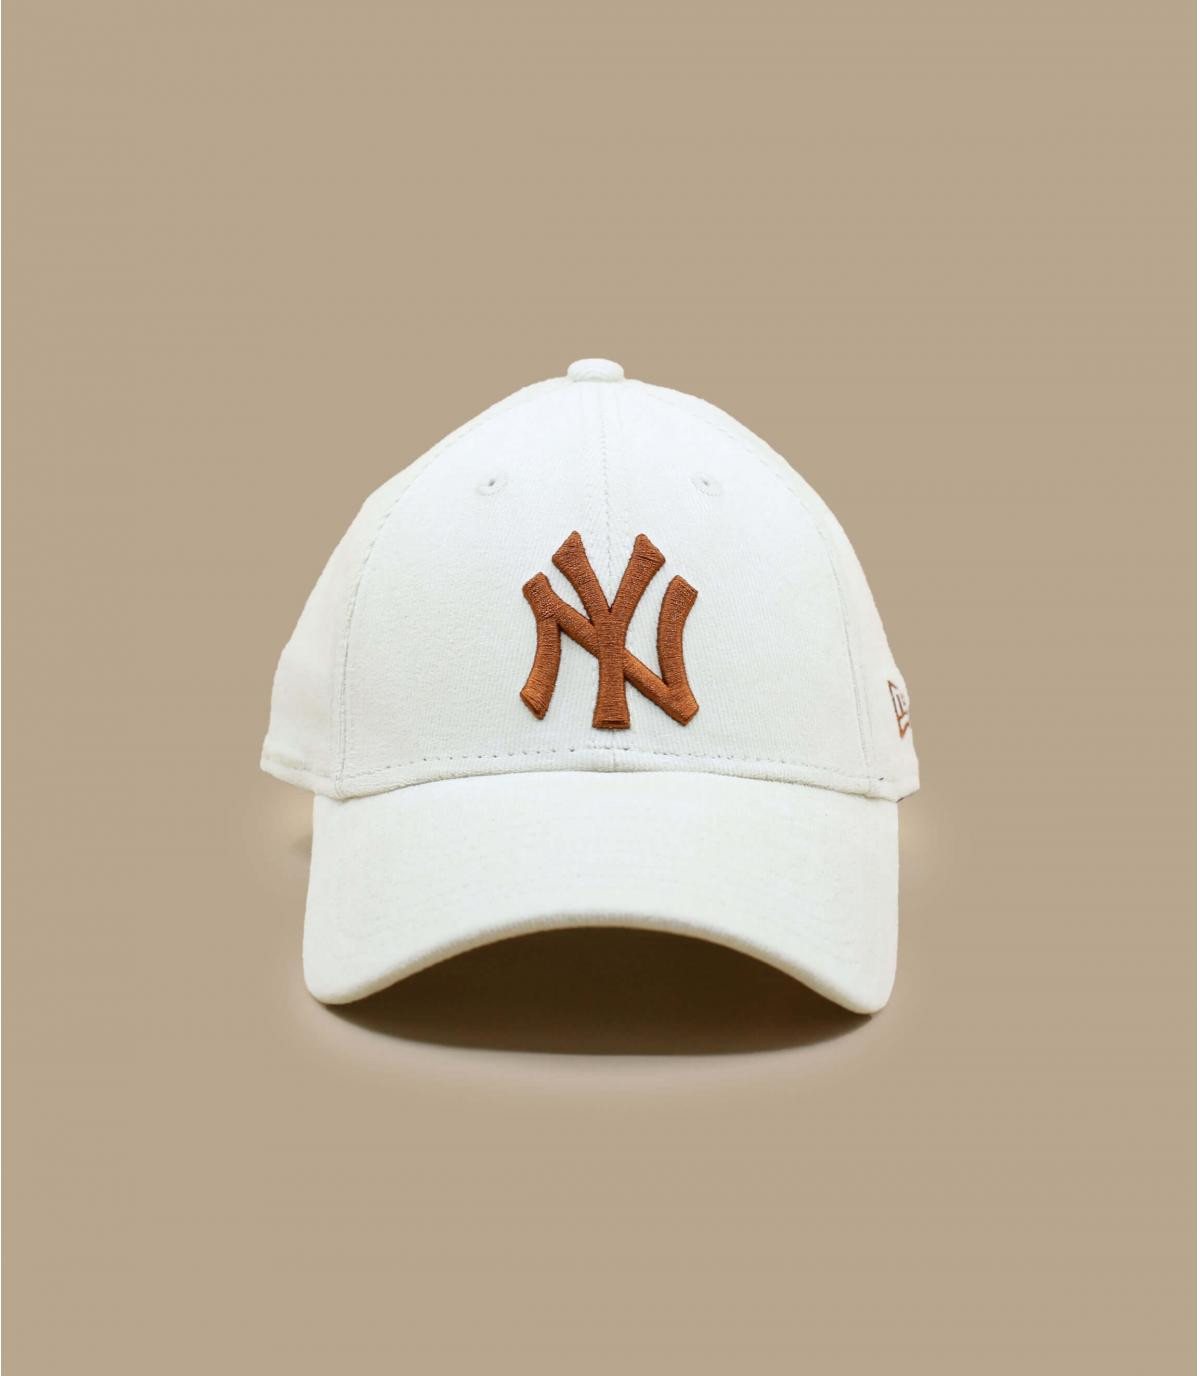 Détails Casquette Wmn Cord NY 940 offwhite toffee - image 2